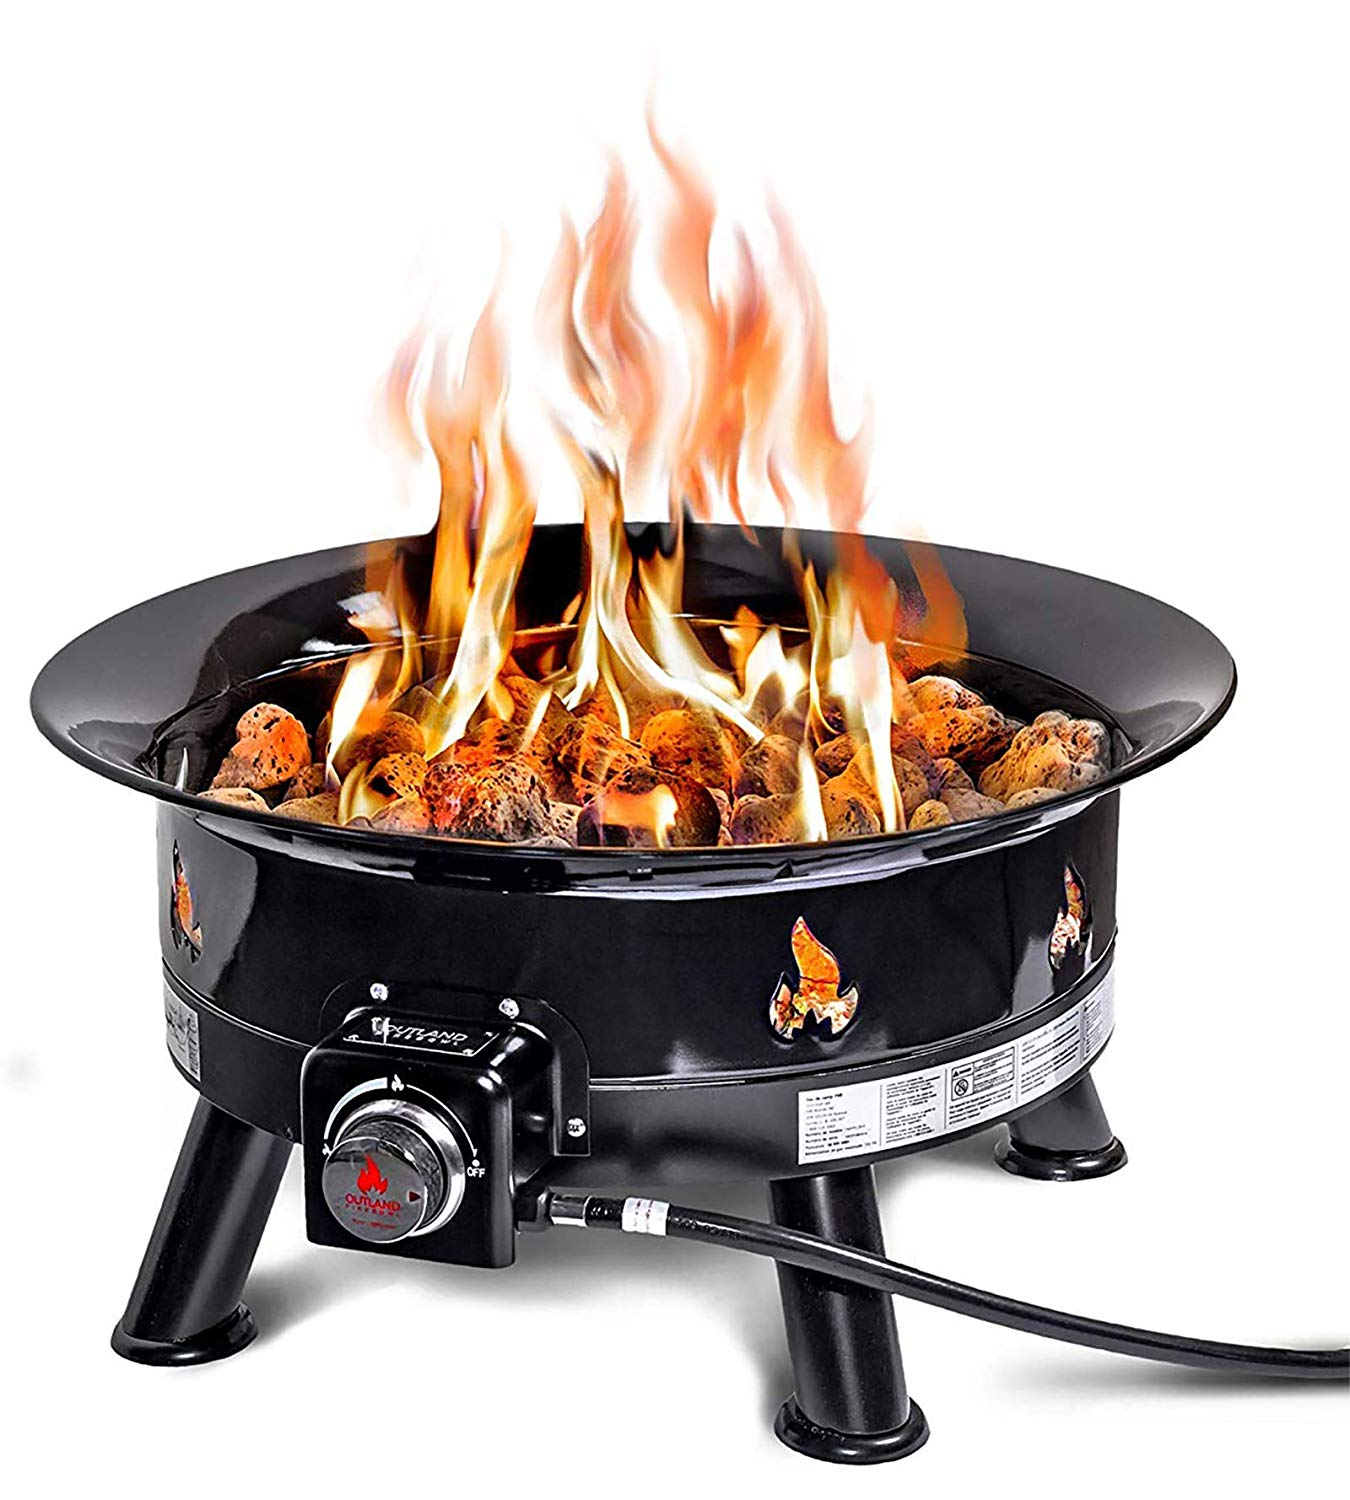 Top 10 Best Portable Propane Gas Fire Pit | Best RV Reviews on Outland Firebowl Propane Fire Pit id=77431